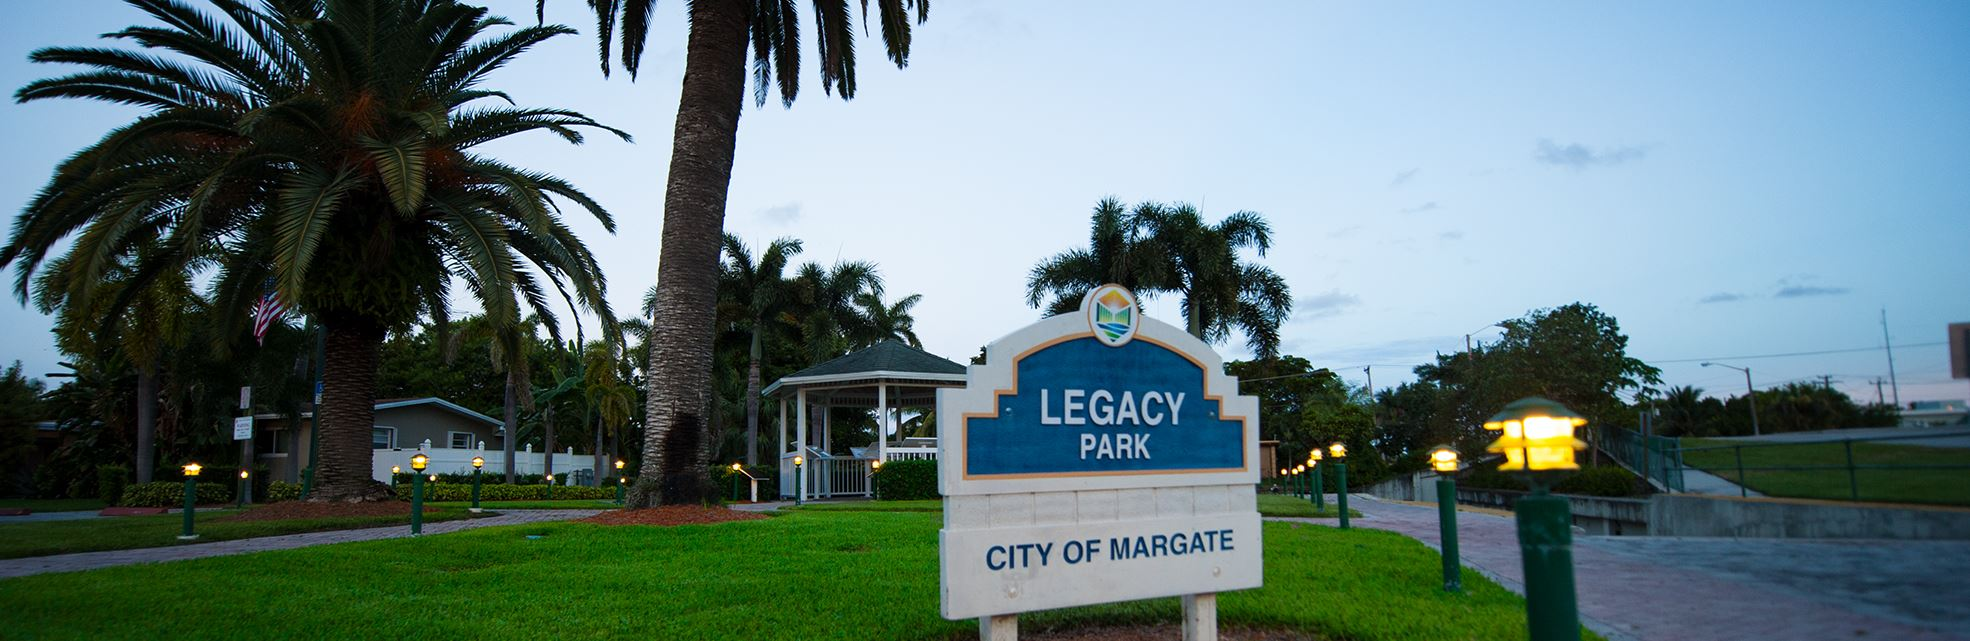 margate fl official website